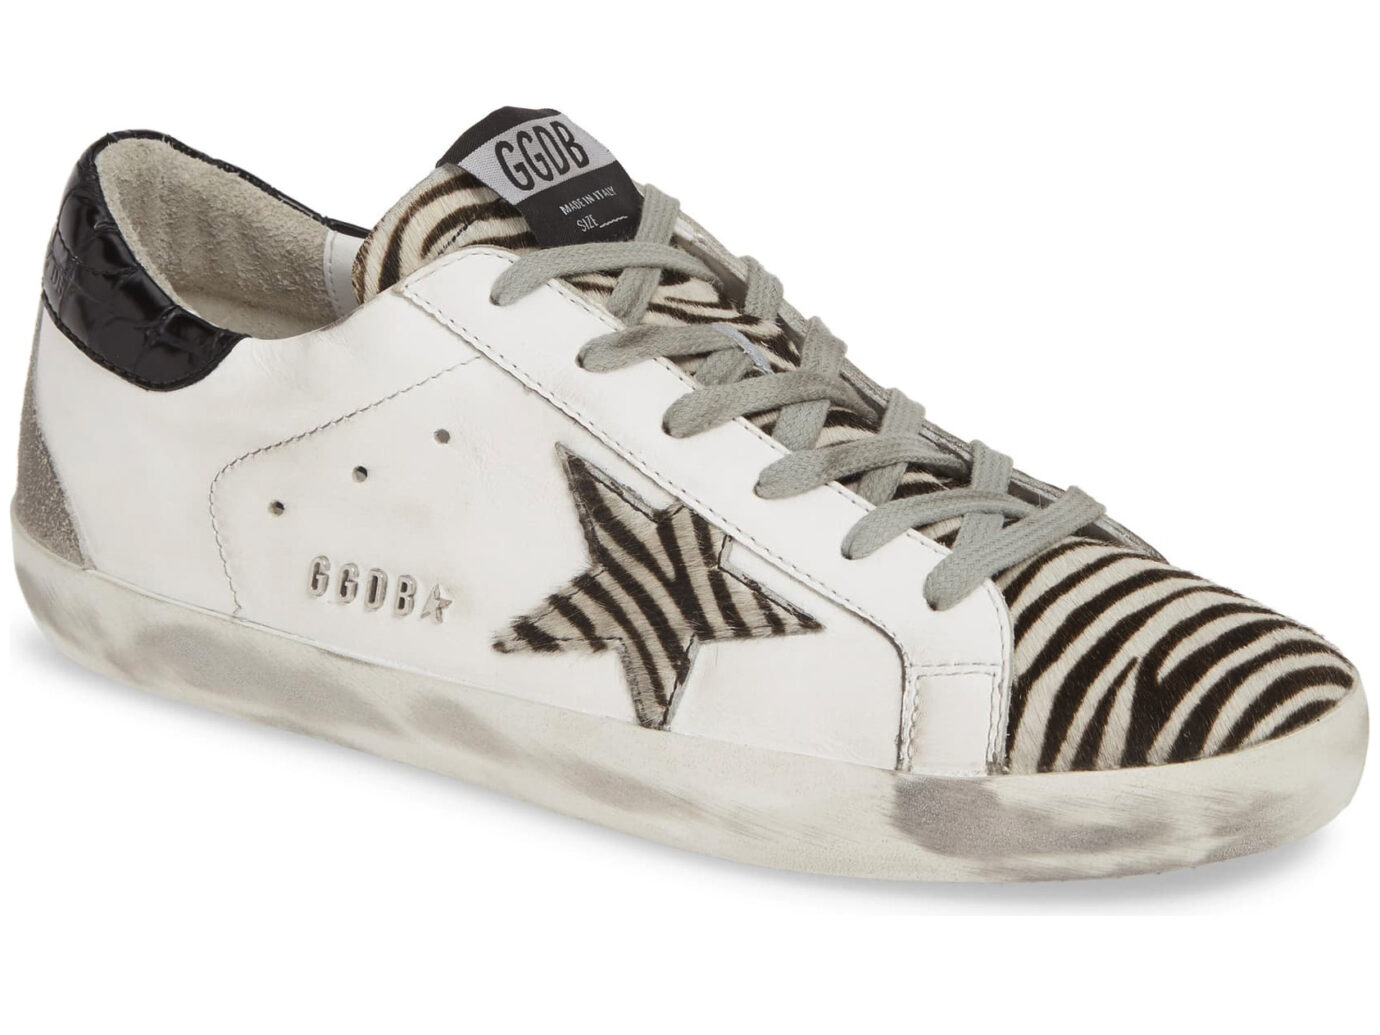 Golden Goose Superstar Calf Hair Sneakers